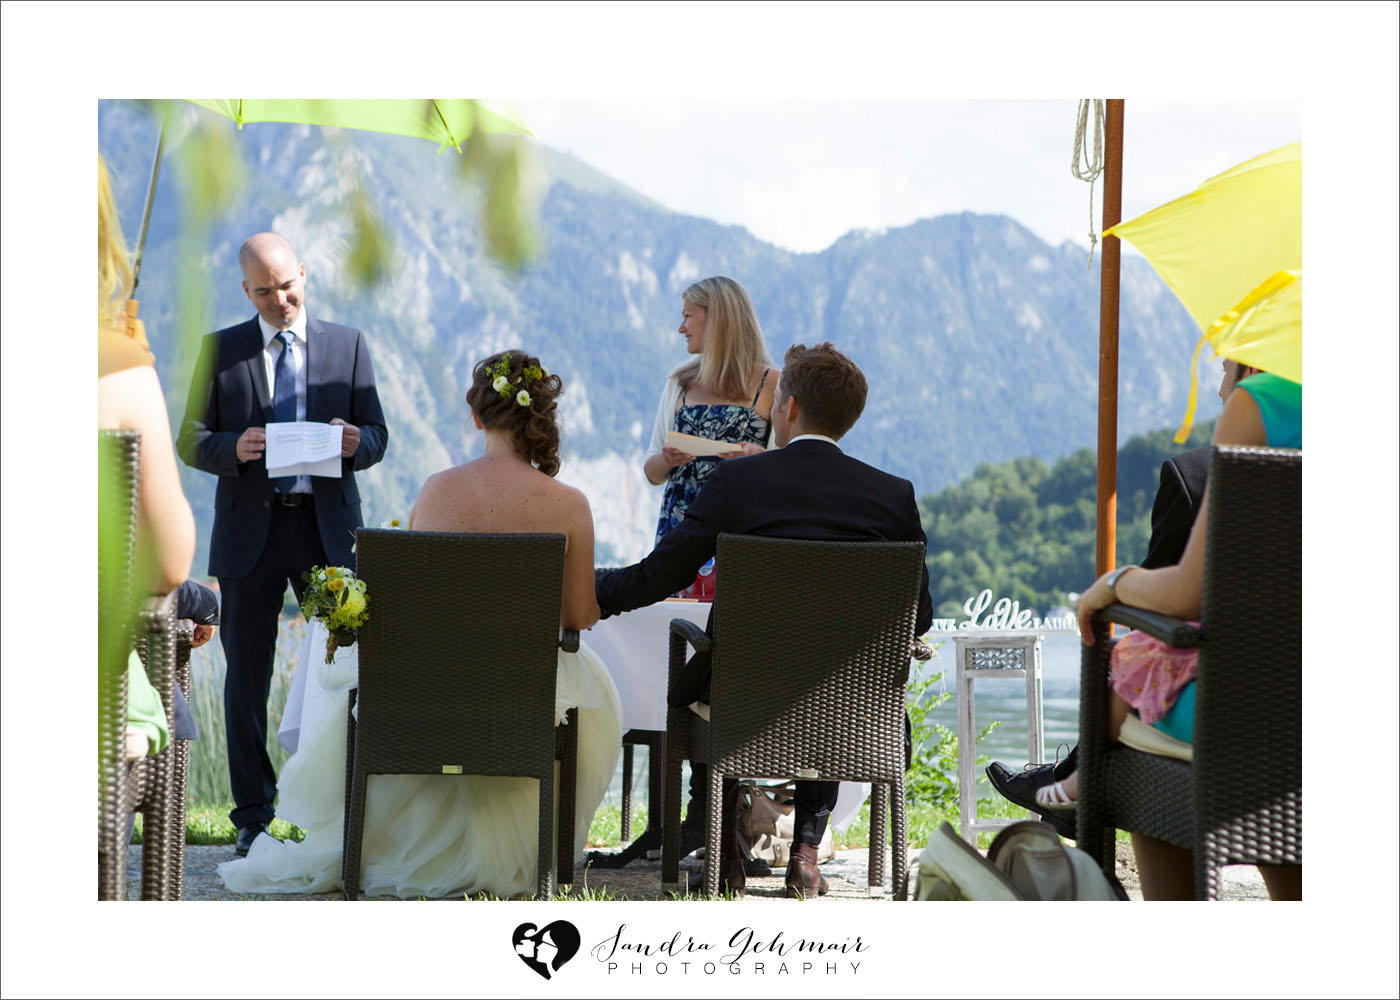 025_heiraten_am_see_spitzvilla_sandra_gehmair